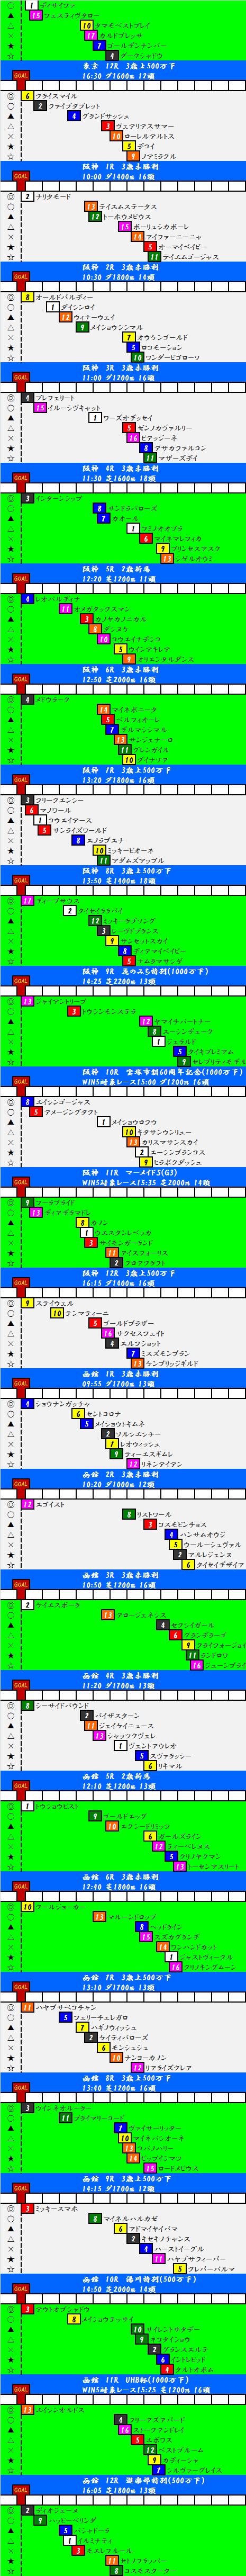 201406152.png